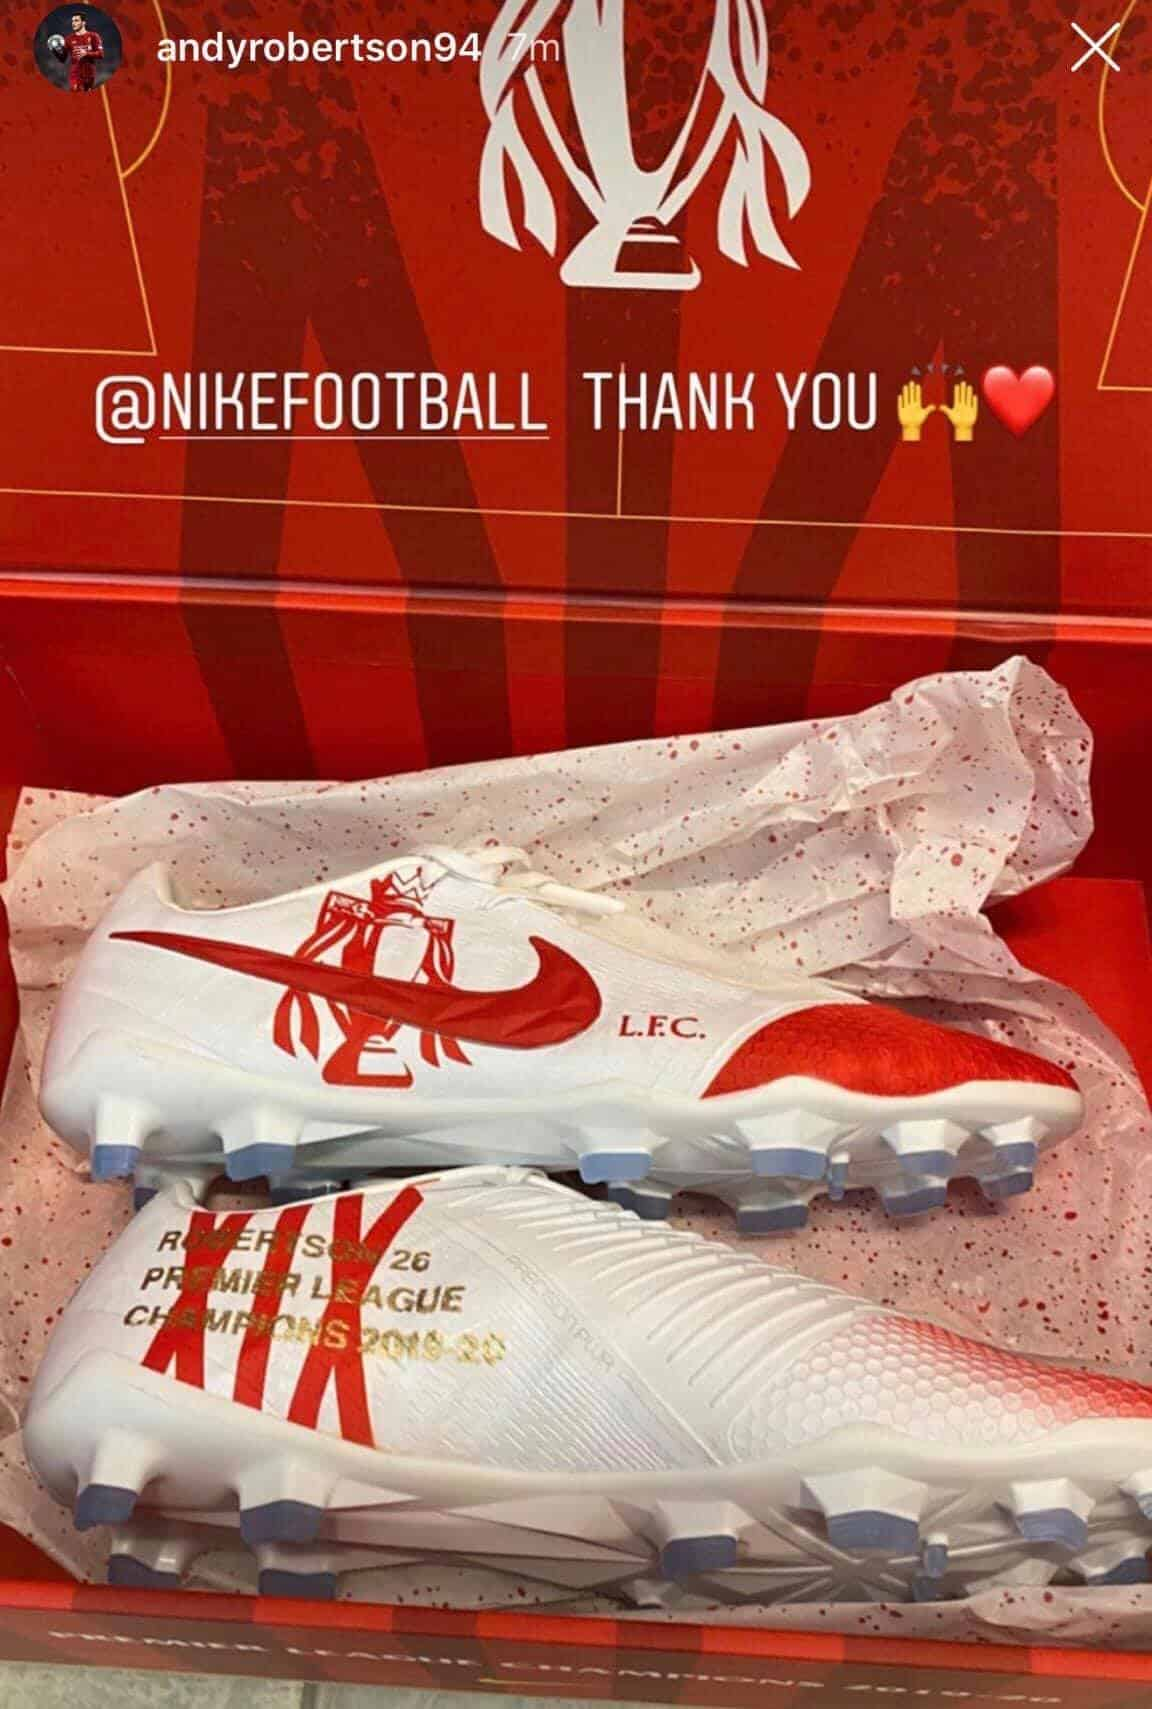 chaussures-nike-joueurs-de-liverpool-champion-andy-robertson